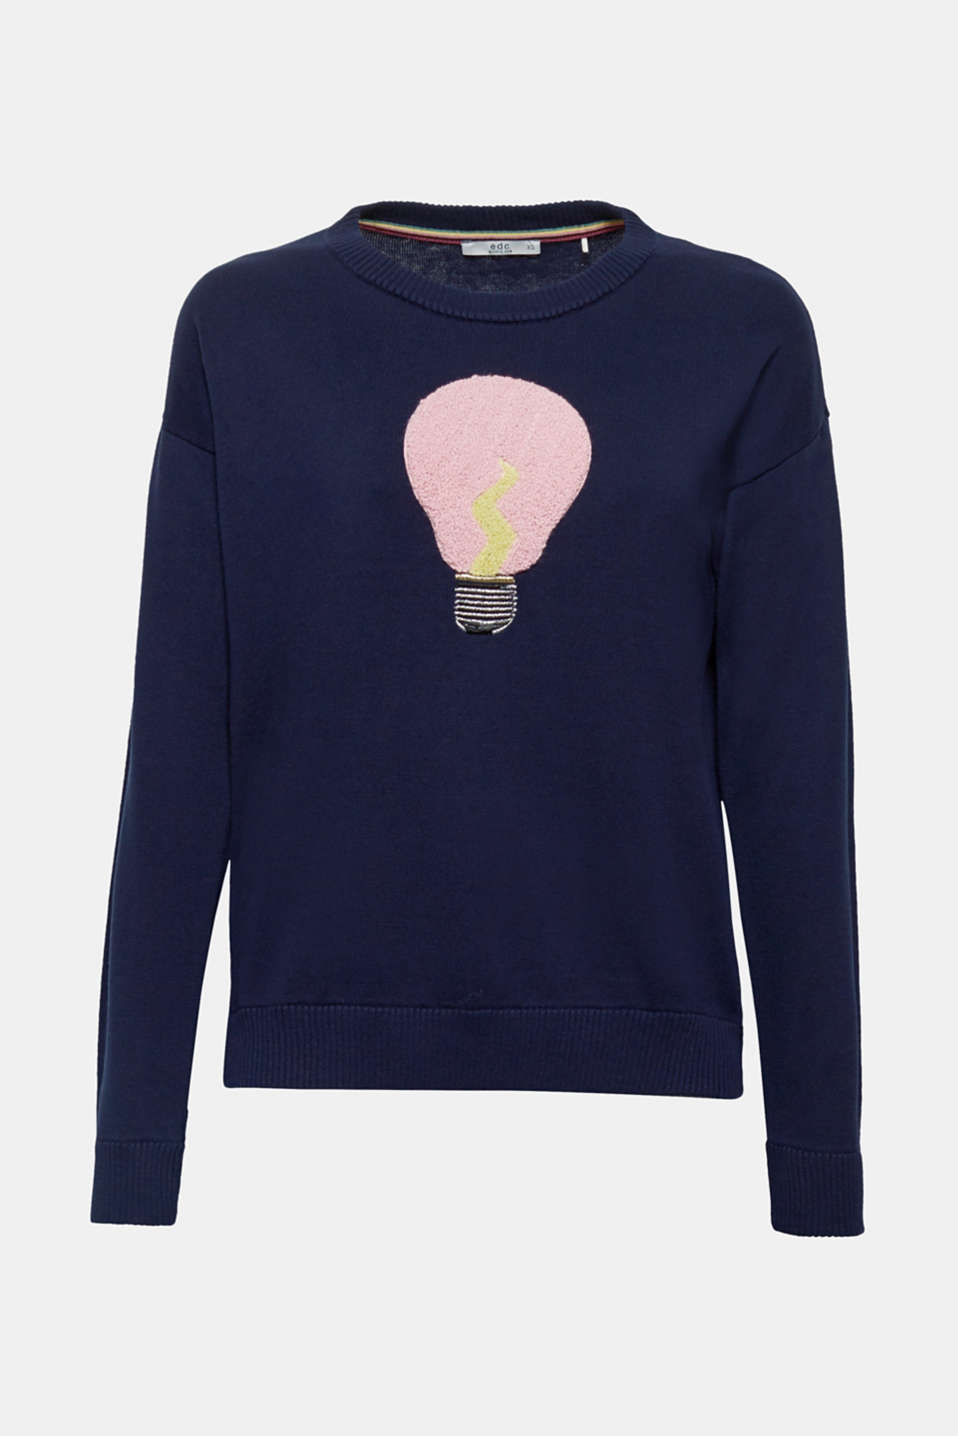 The light bulb motif in curly bouclé makes this fine knit jumper in pure cotton a stylish eye-catching piece.